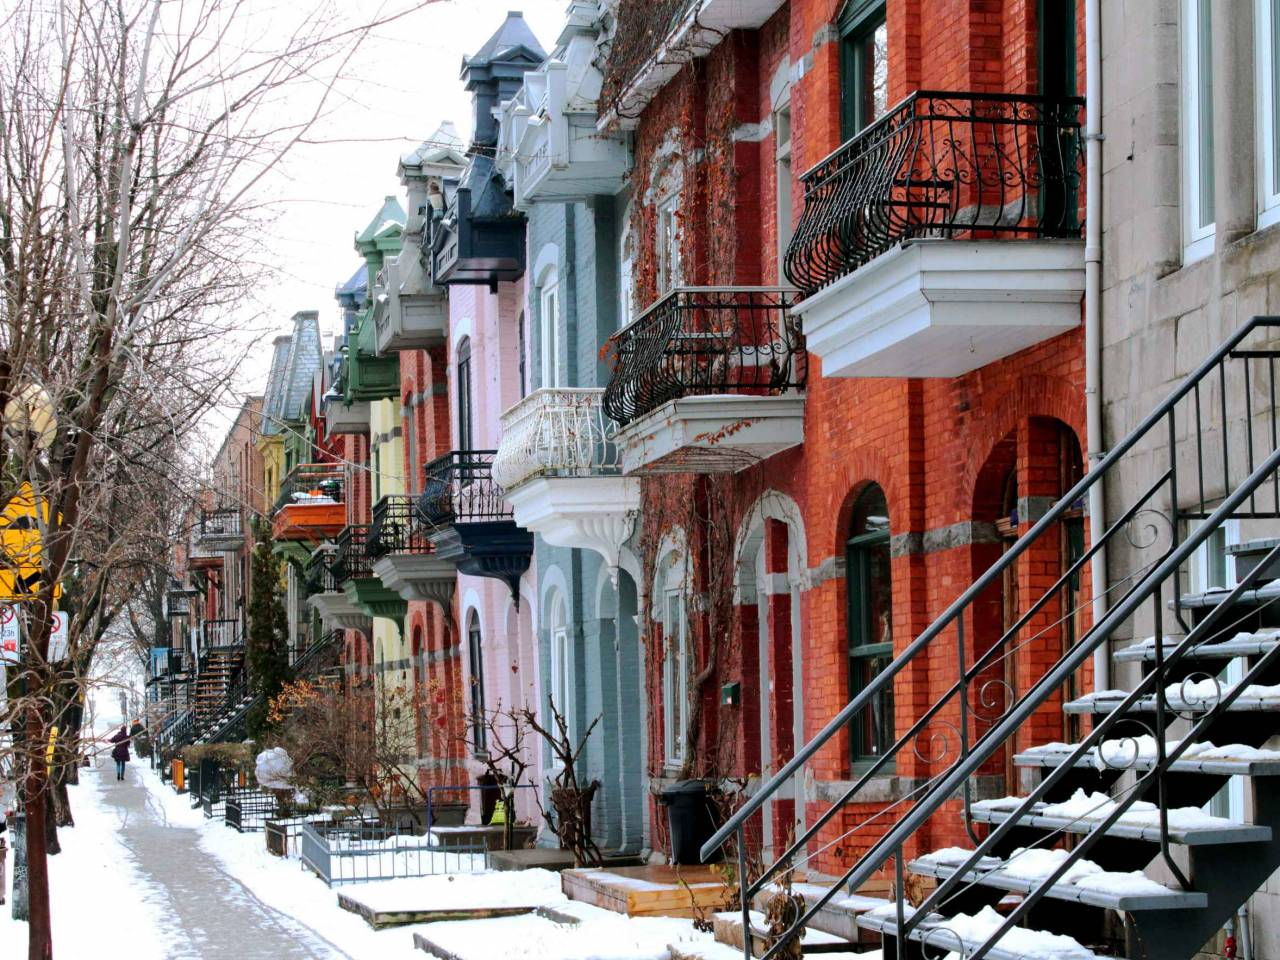 Beautiful houses of old historical Montreal neighborhood Plateau Mont Royal in winter season, bright painted doors.